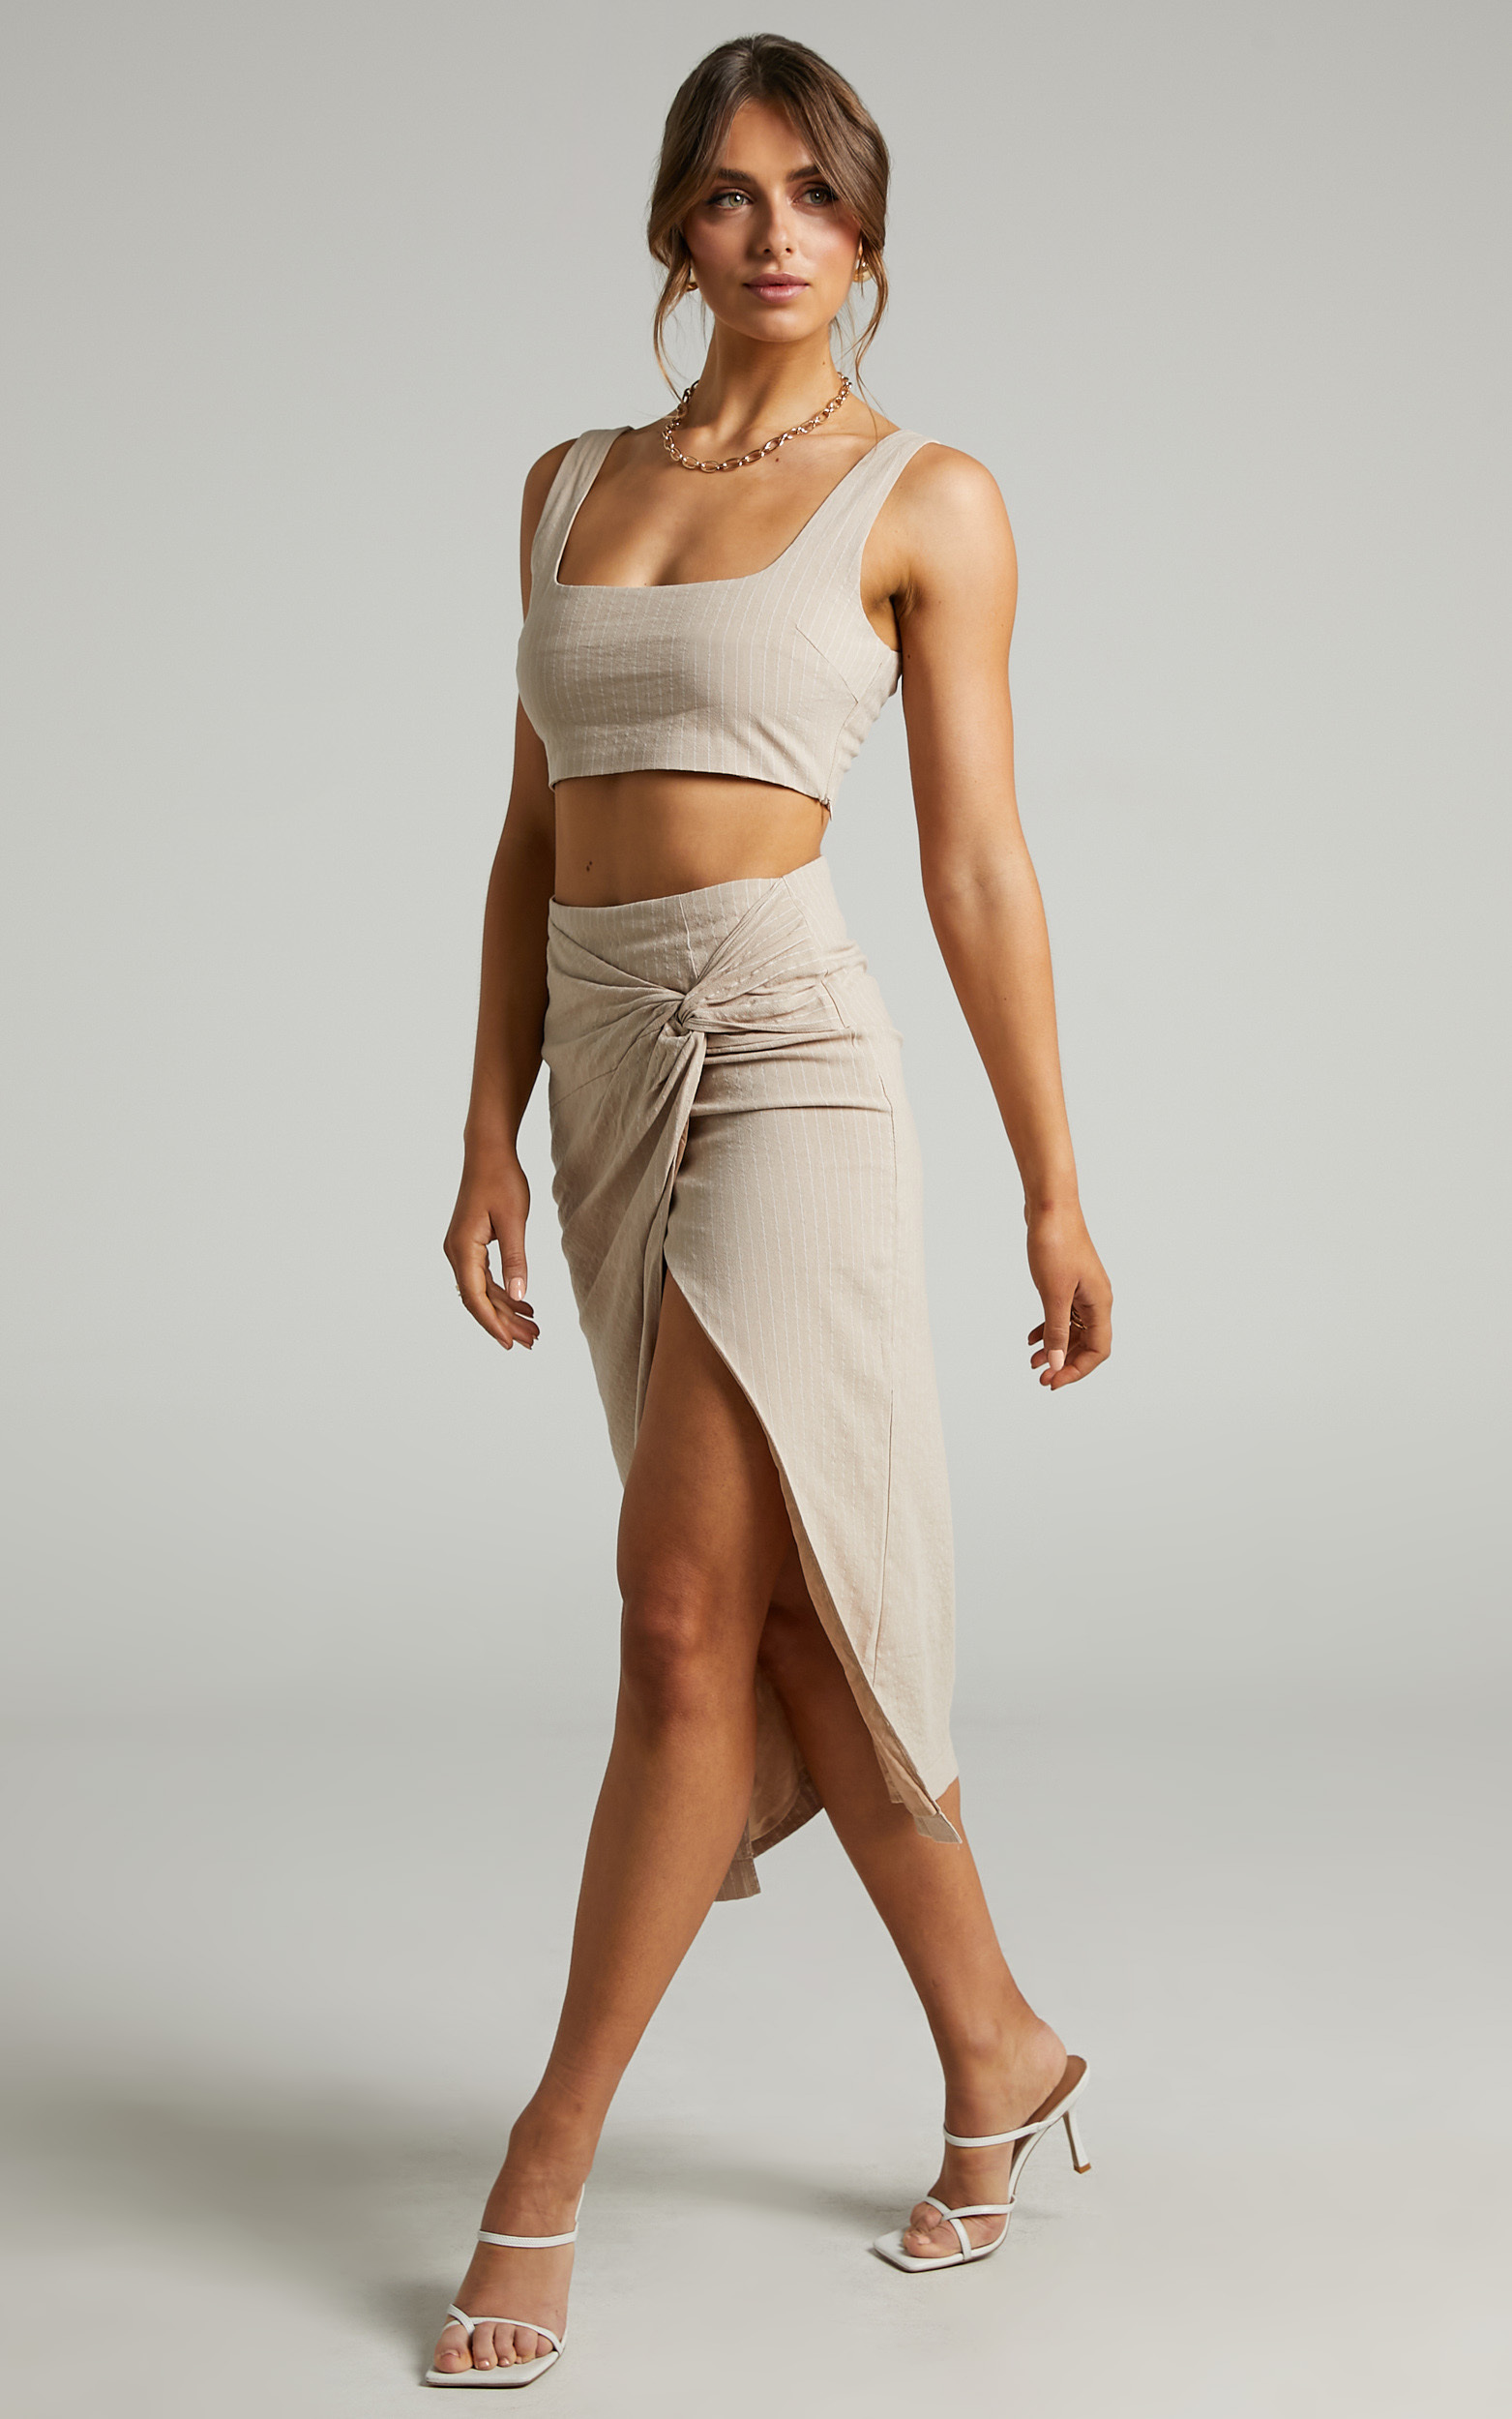 Avery Crop top and Twist Midi skirt Two Piece Set in Beige Stripe - 06, BRN2, hi-res image number null